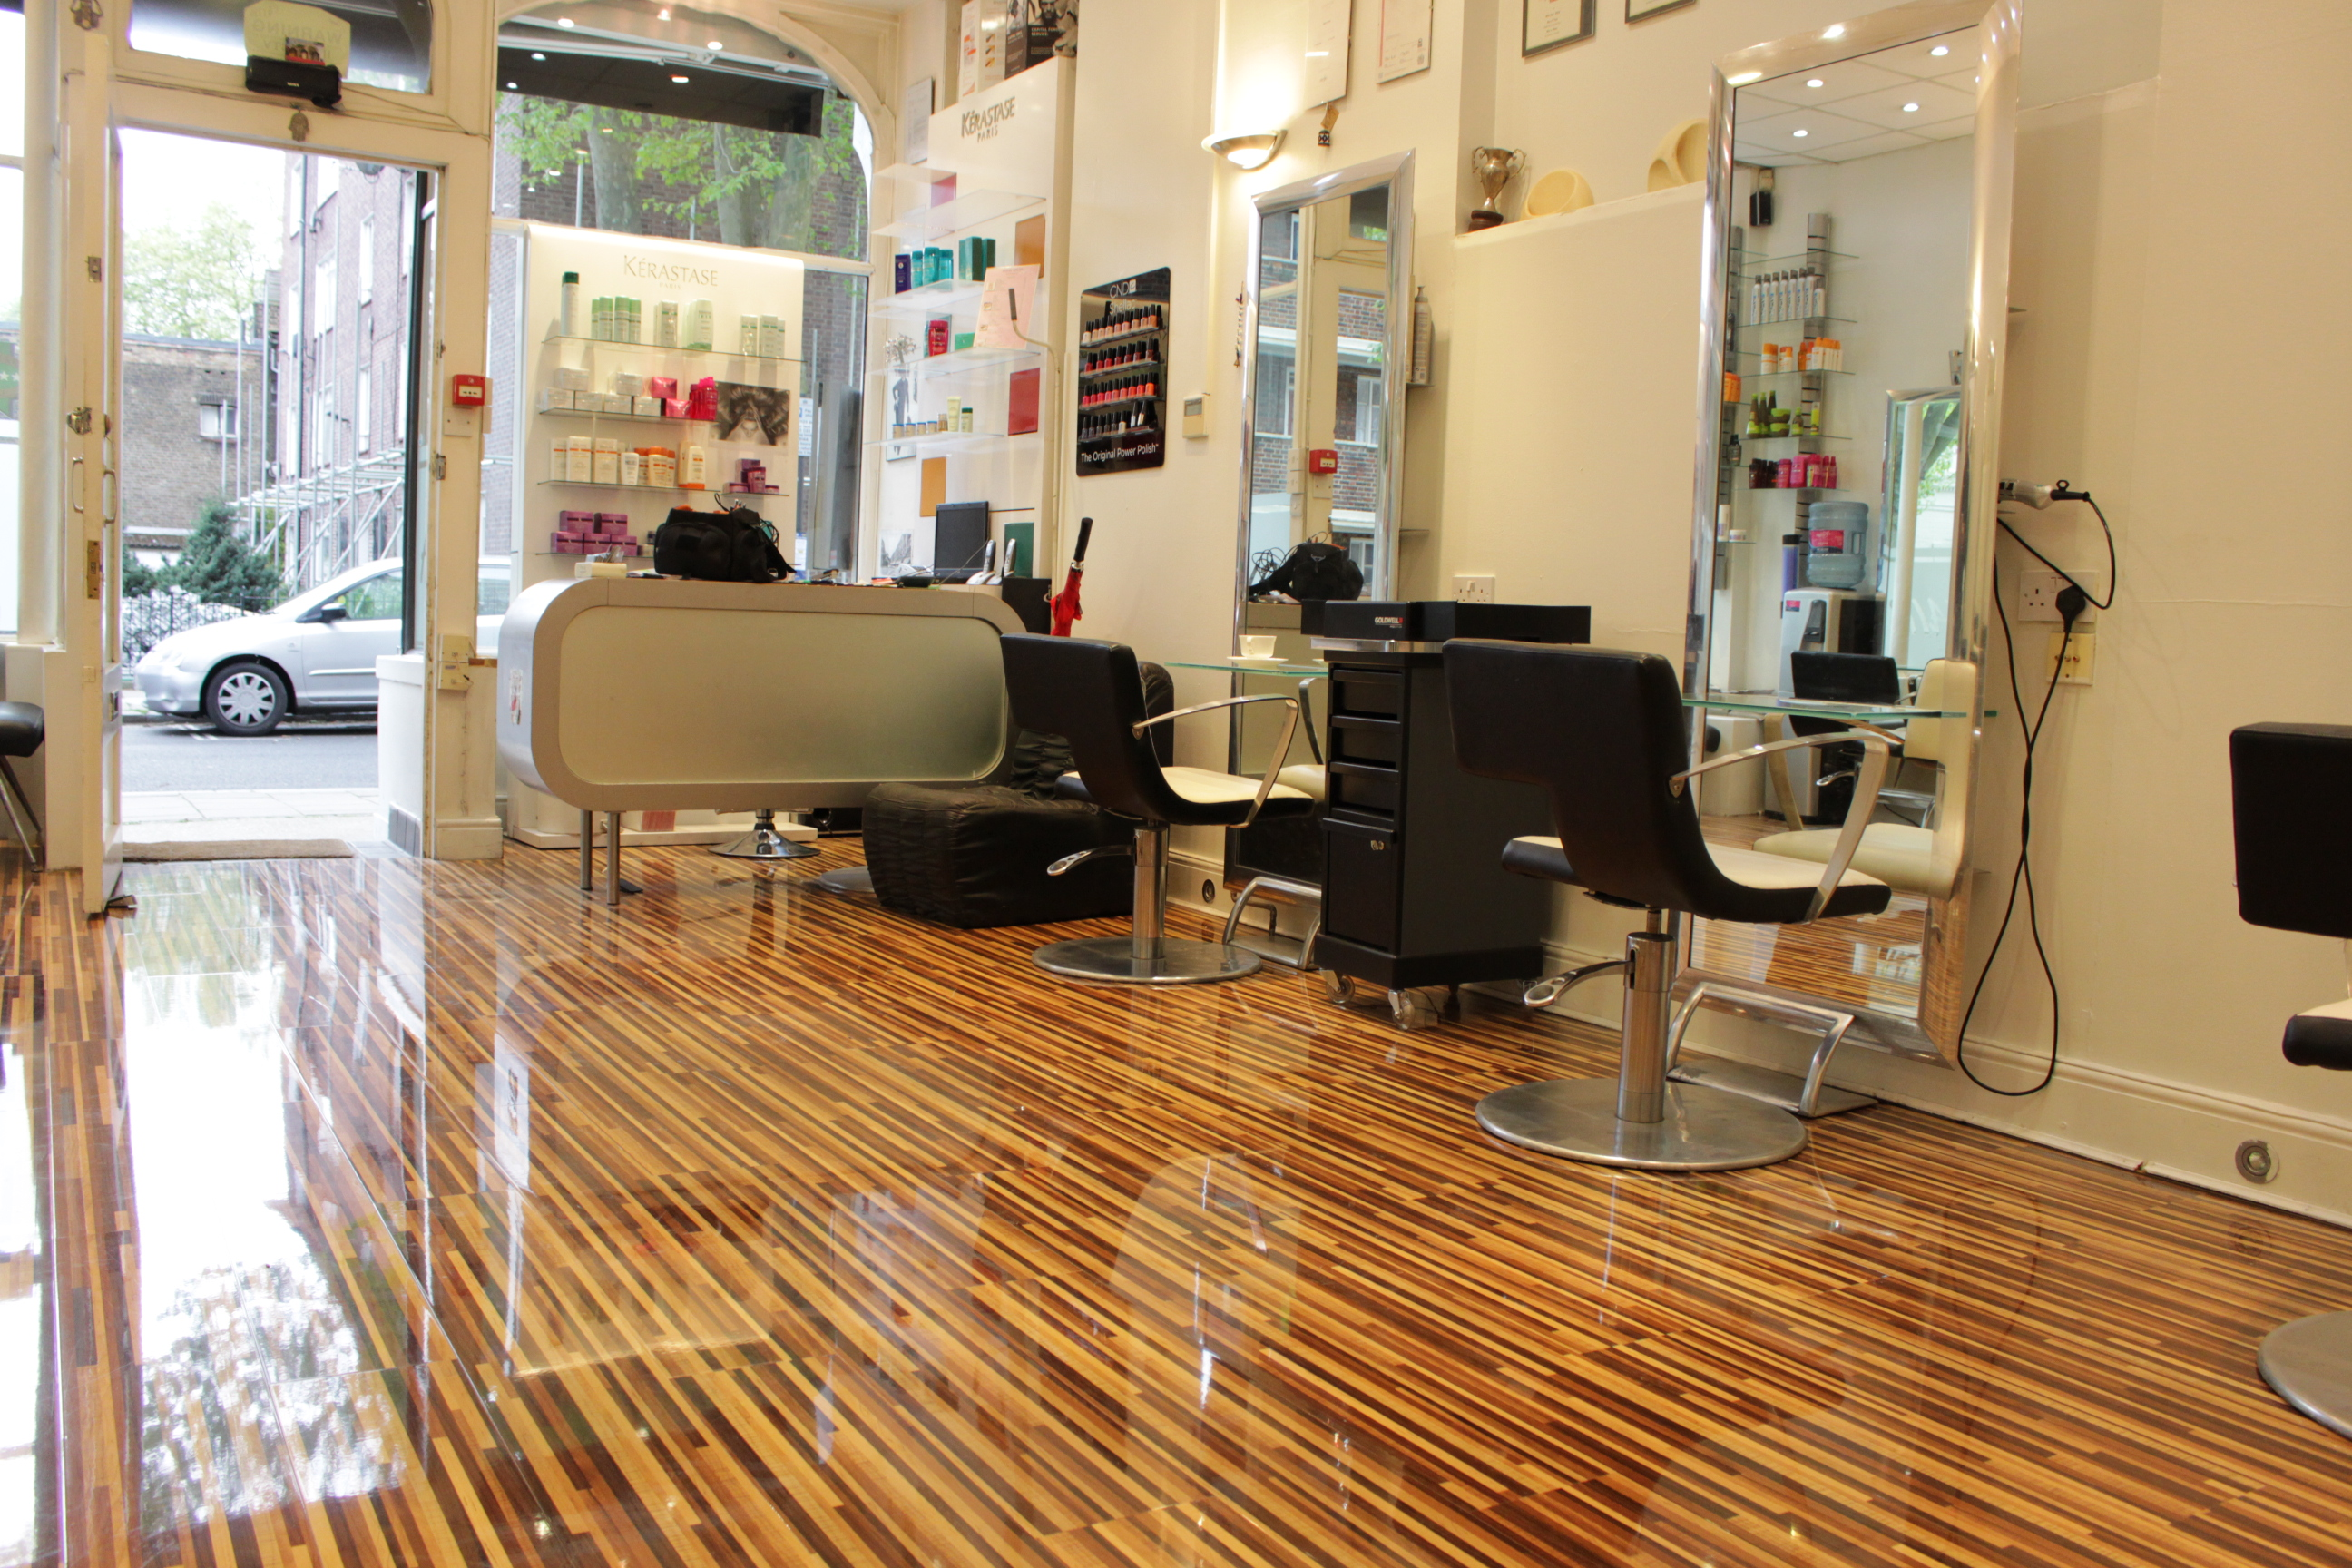 Upmarket st johns wood hair salon installs designer for Salon parquet